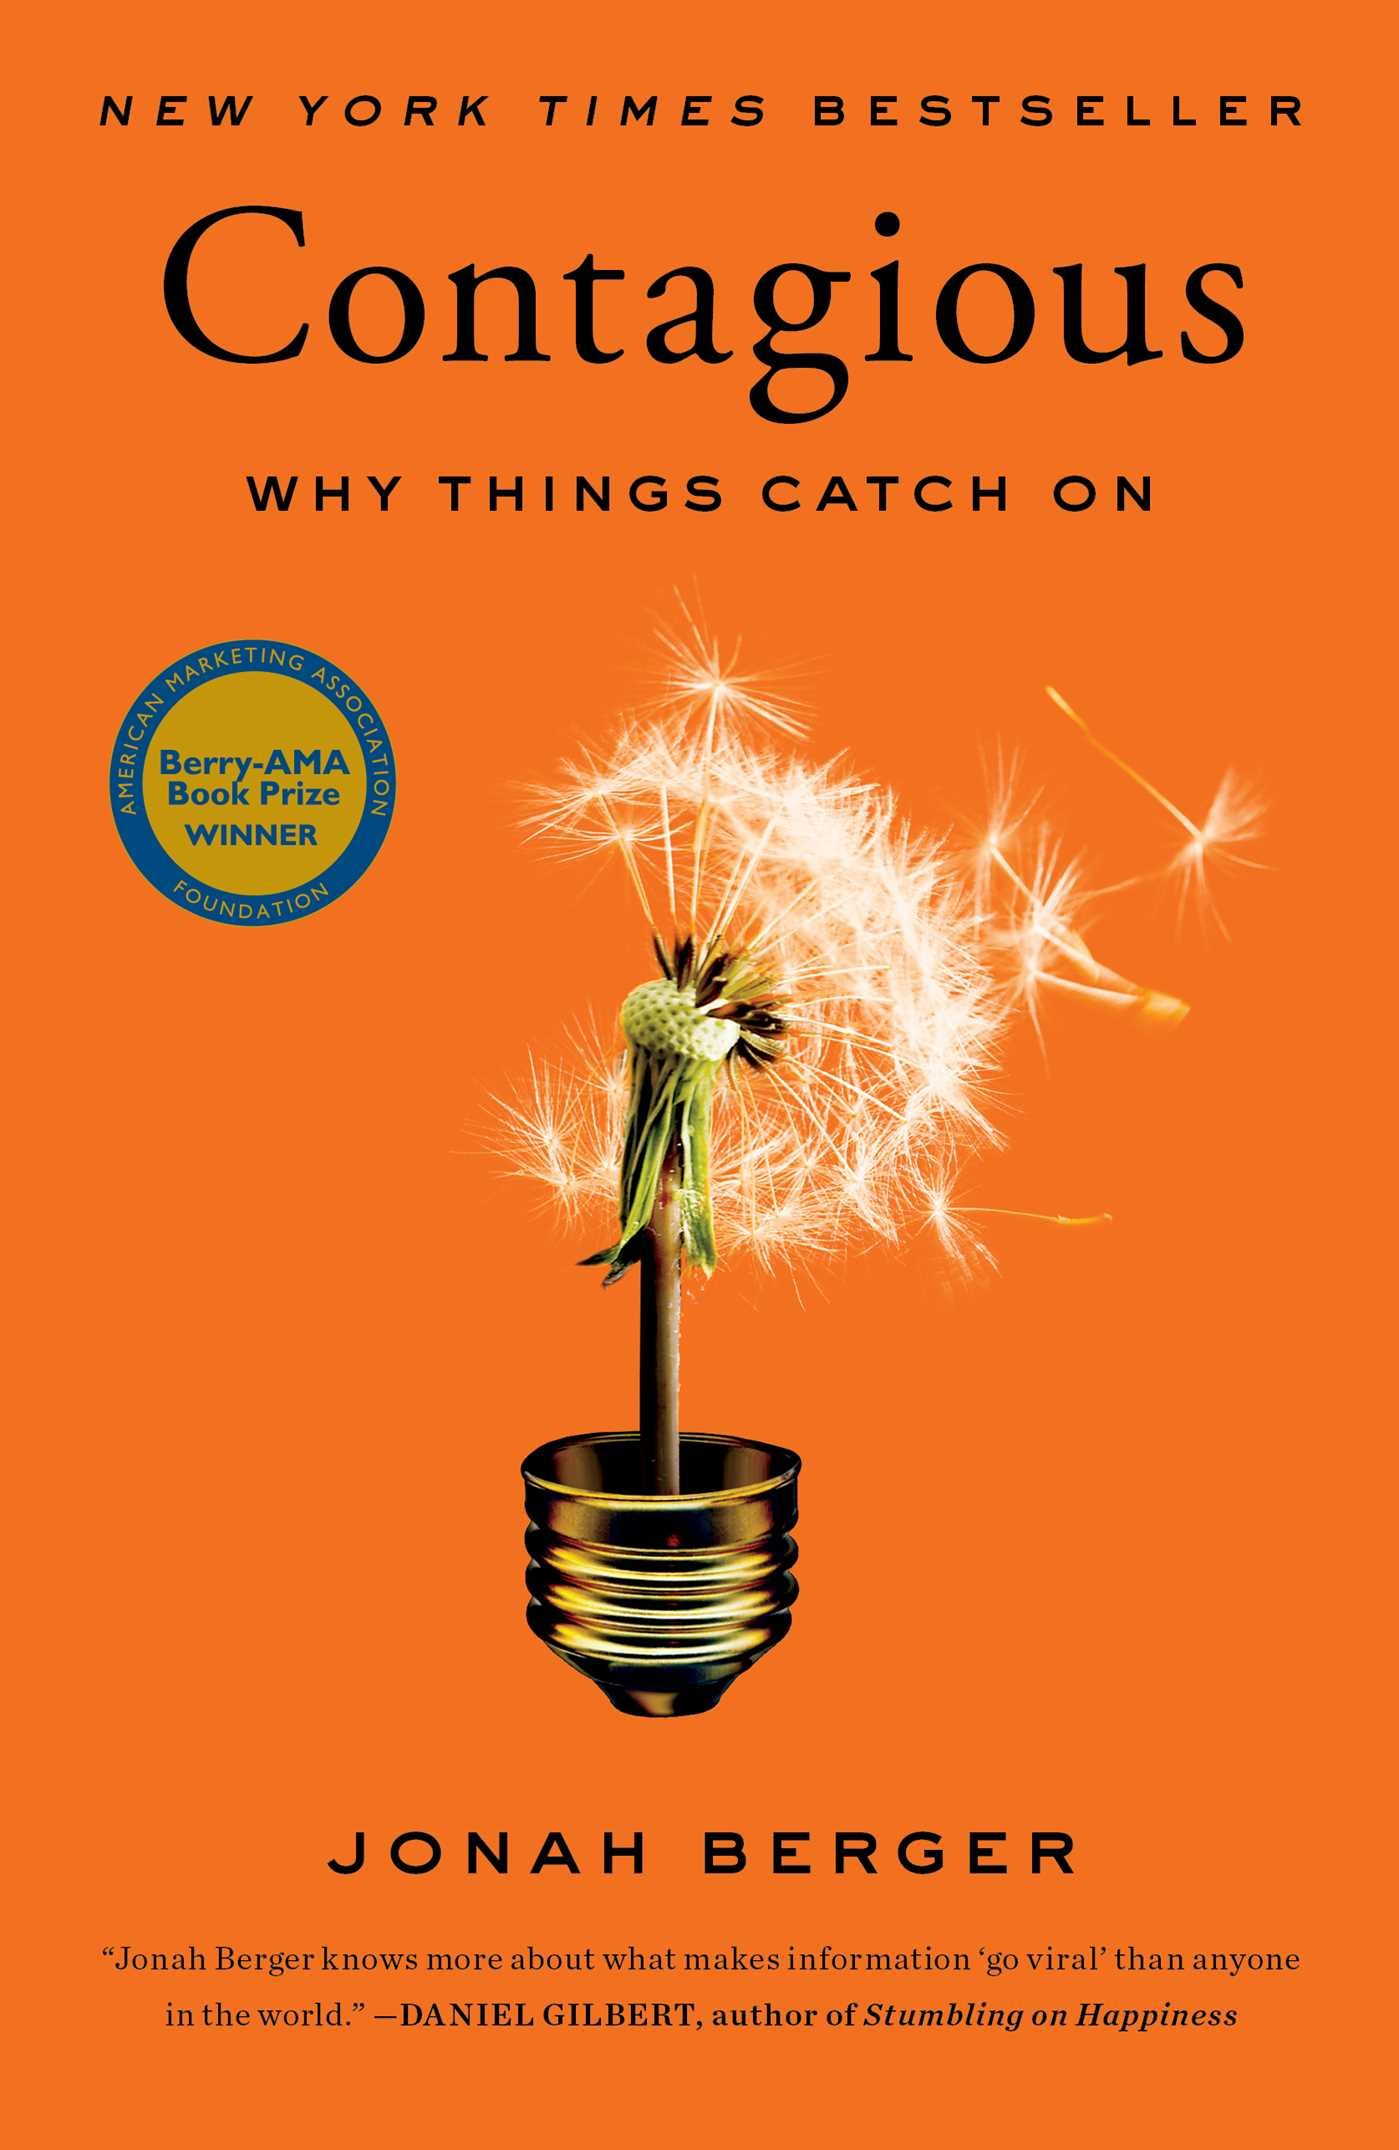 Buy Contagious: Why Things Catch On Book Online at Low Prices in India |  Contagious: Why Things Catch On Reviews & Ratings - Amazon.in